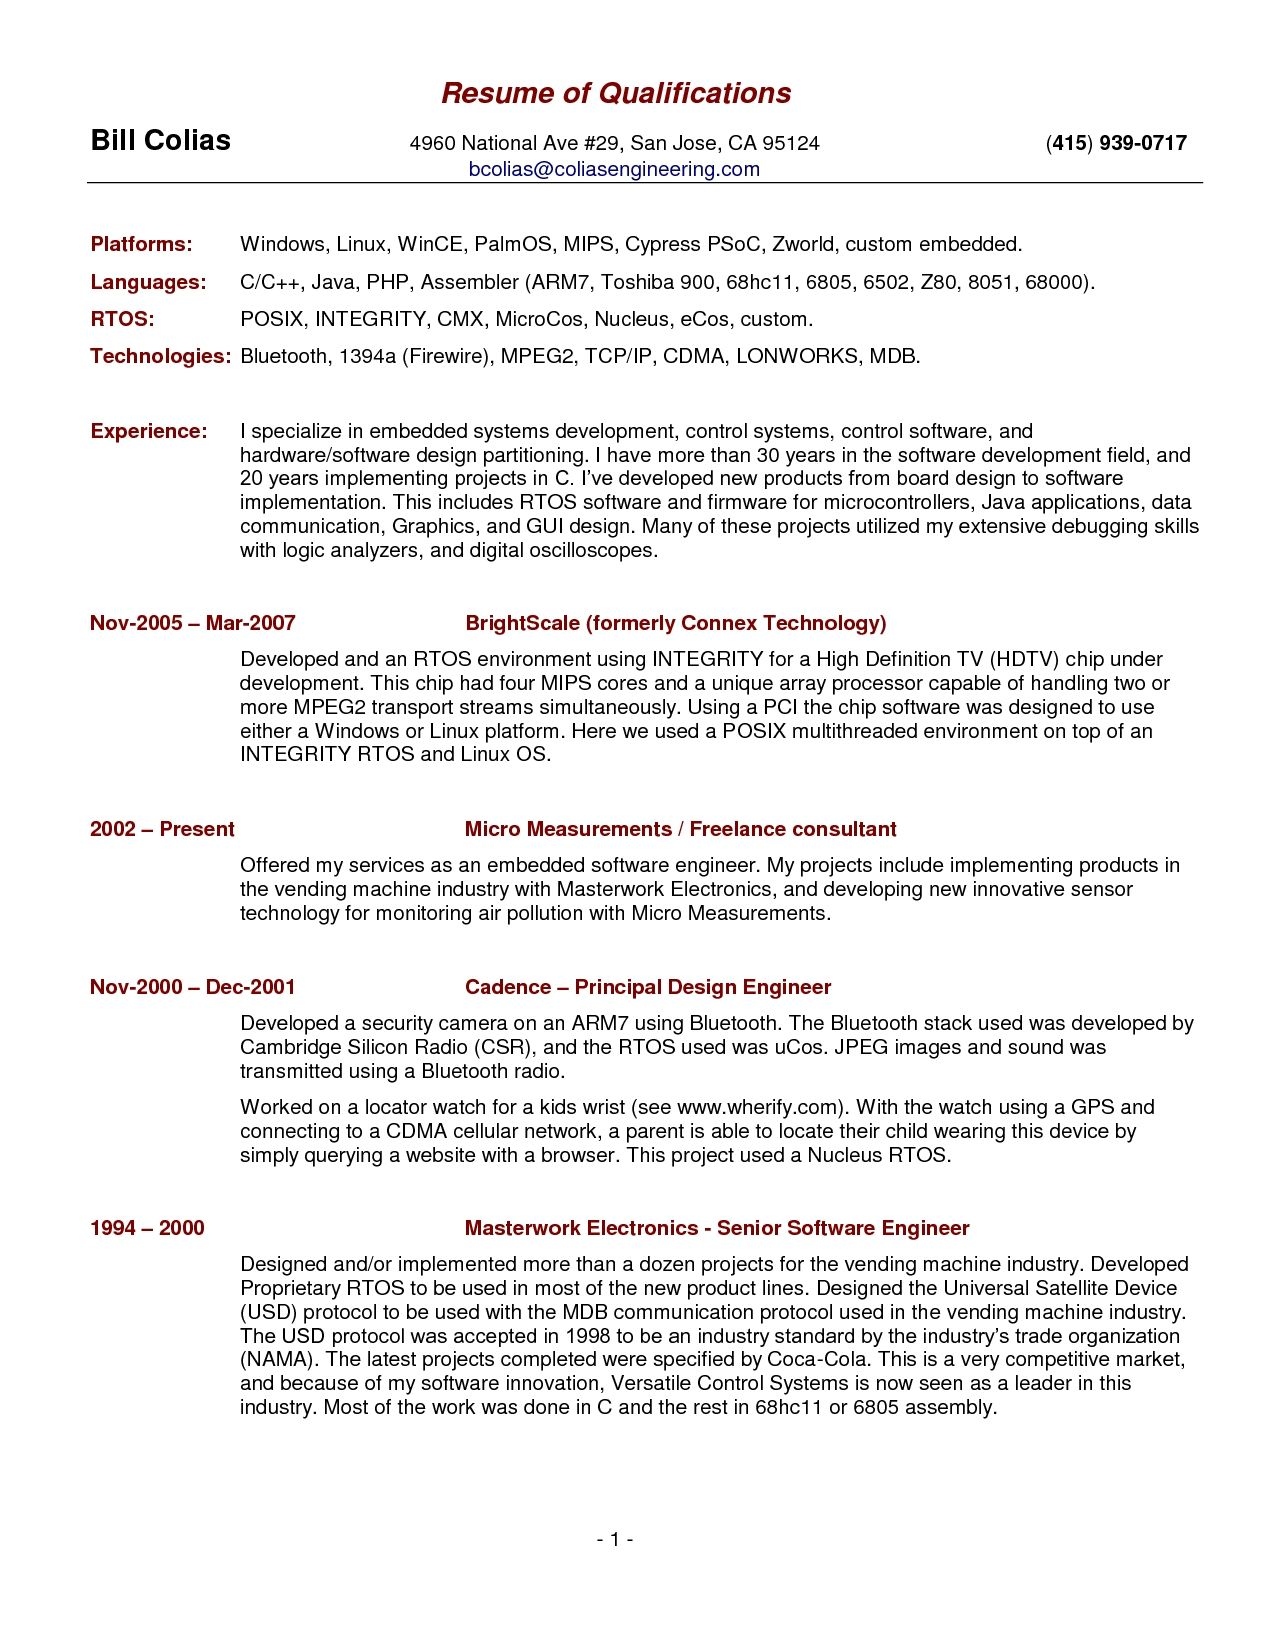 Job Qualifications Sample Skylogic Skills Resume Examples Qualification Key  Sample Skills Resume